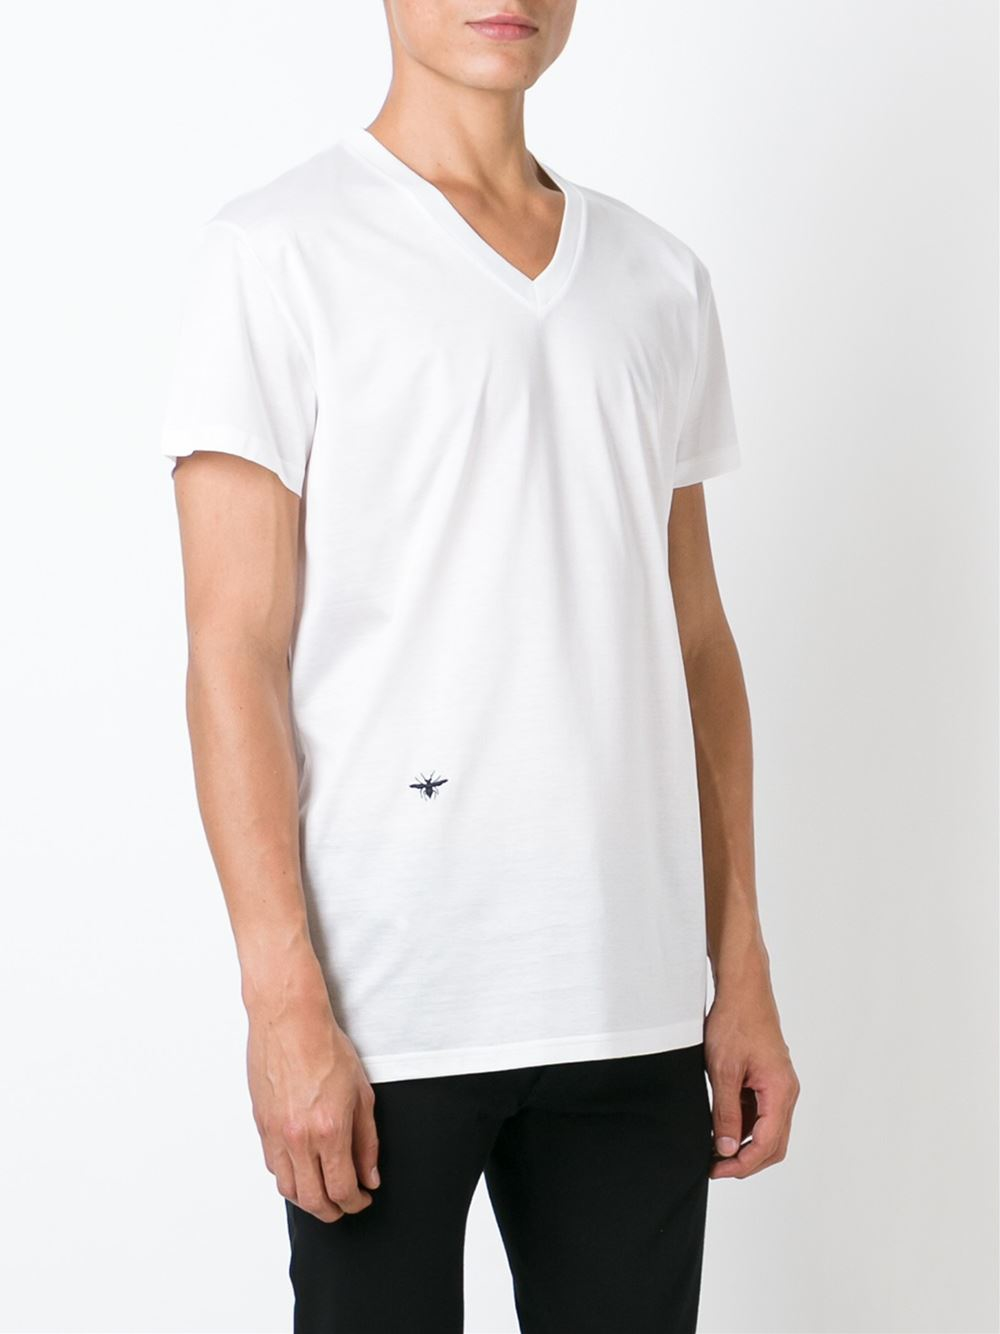 dior homme insect motif v neck t shirt in white for men lyst. Black Bedroom Furniture Sets. Home Design Ideas